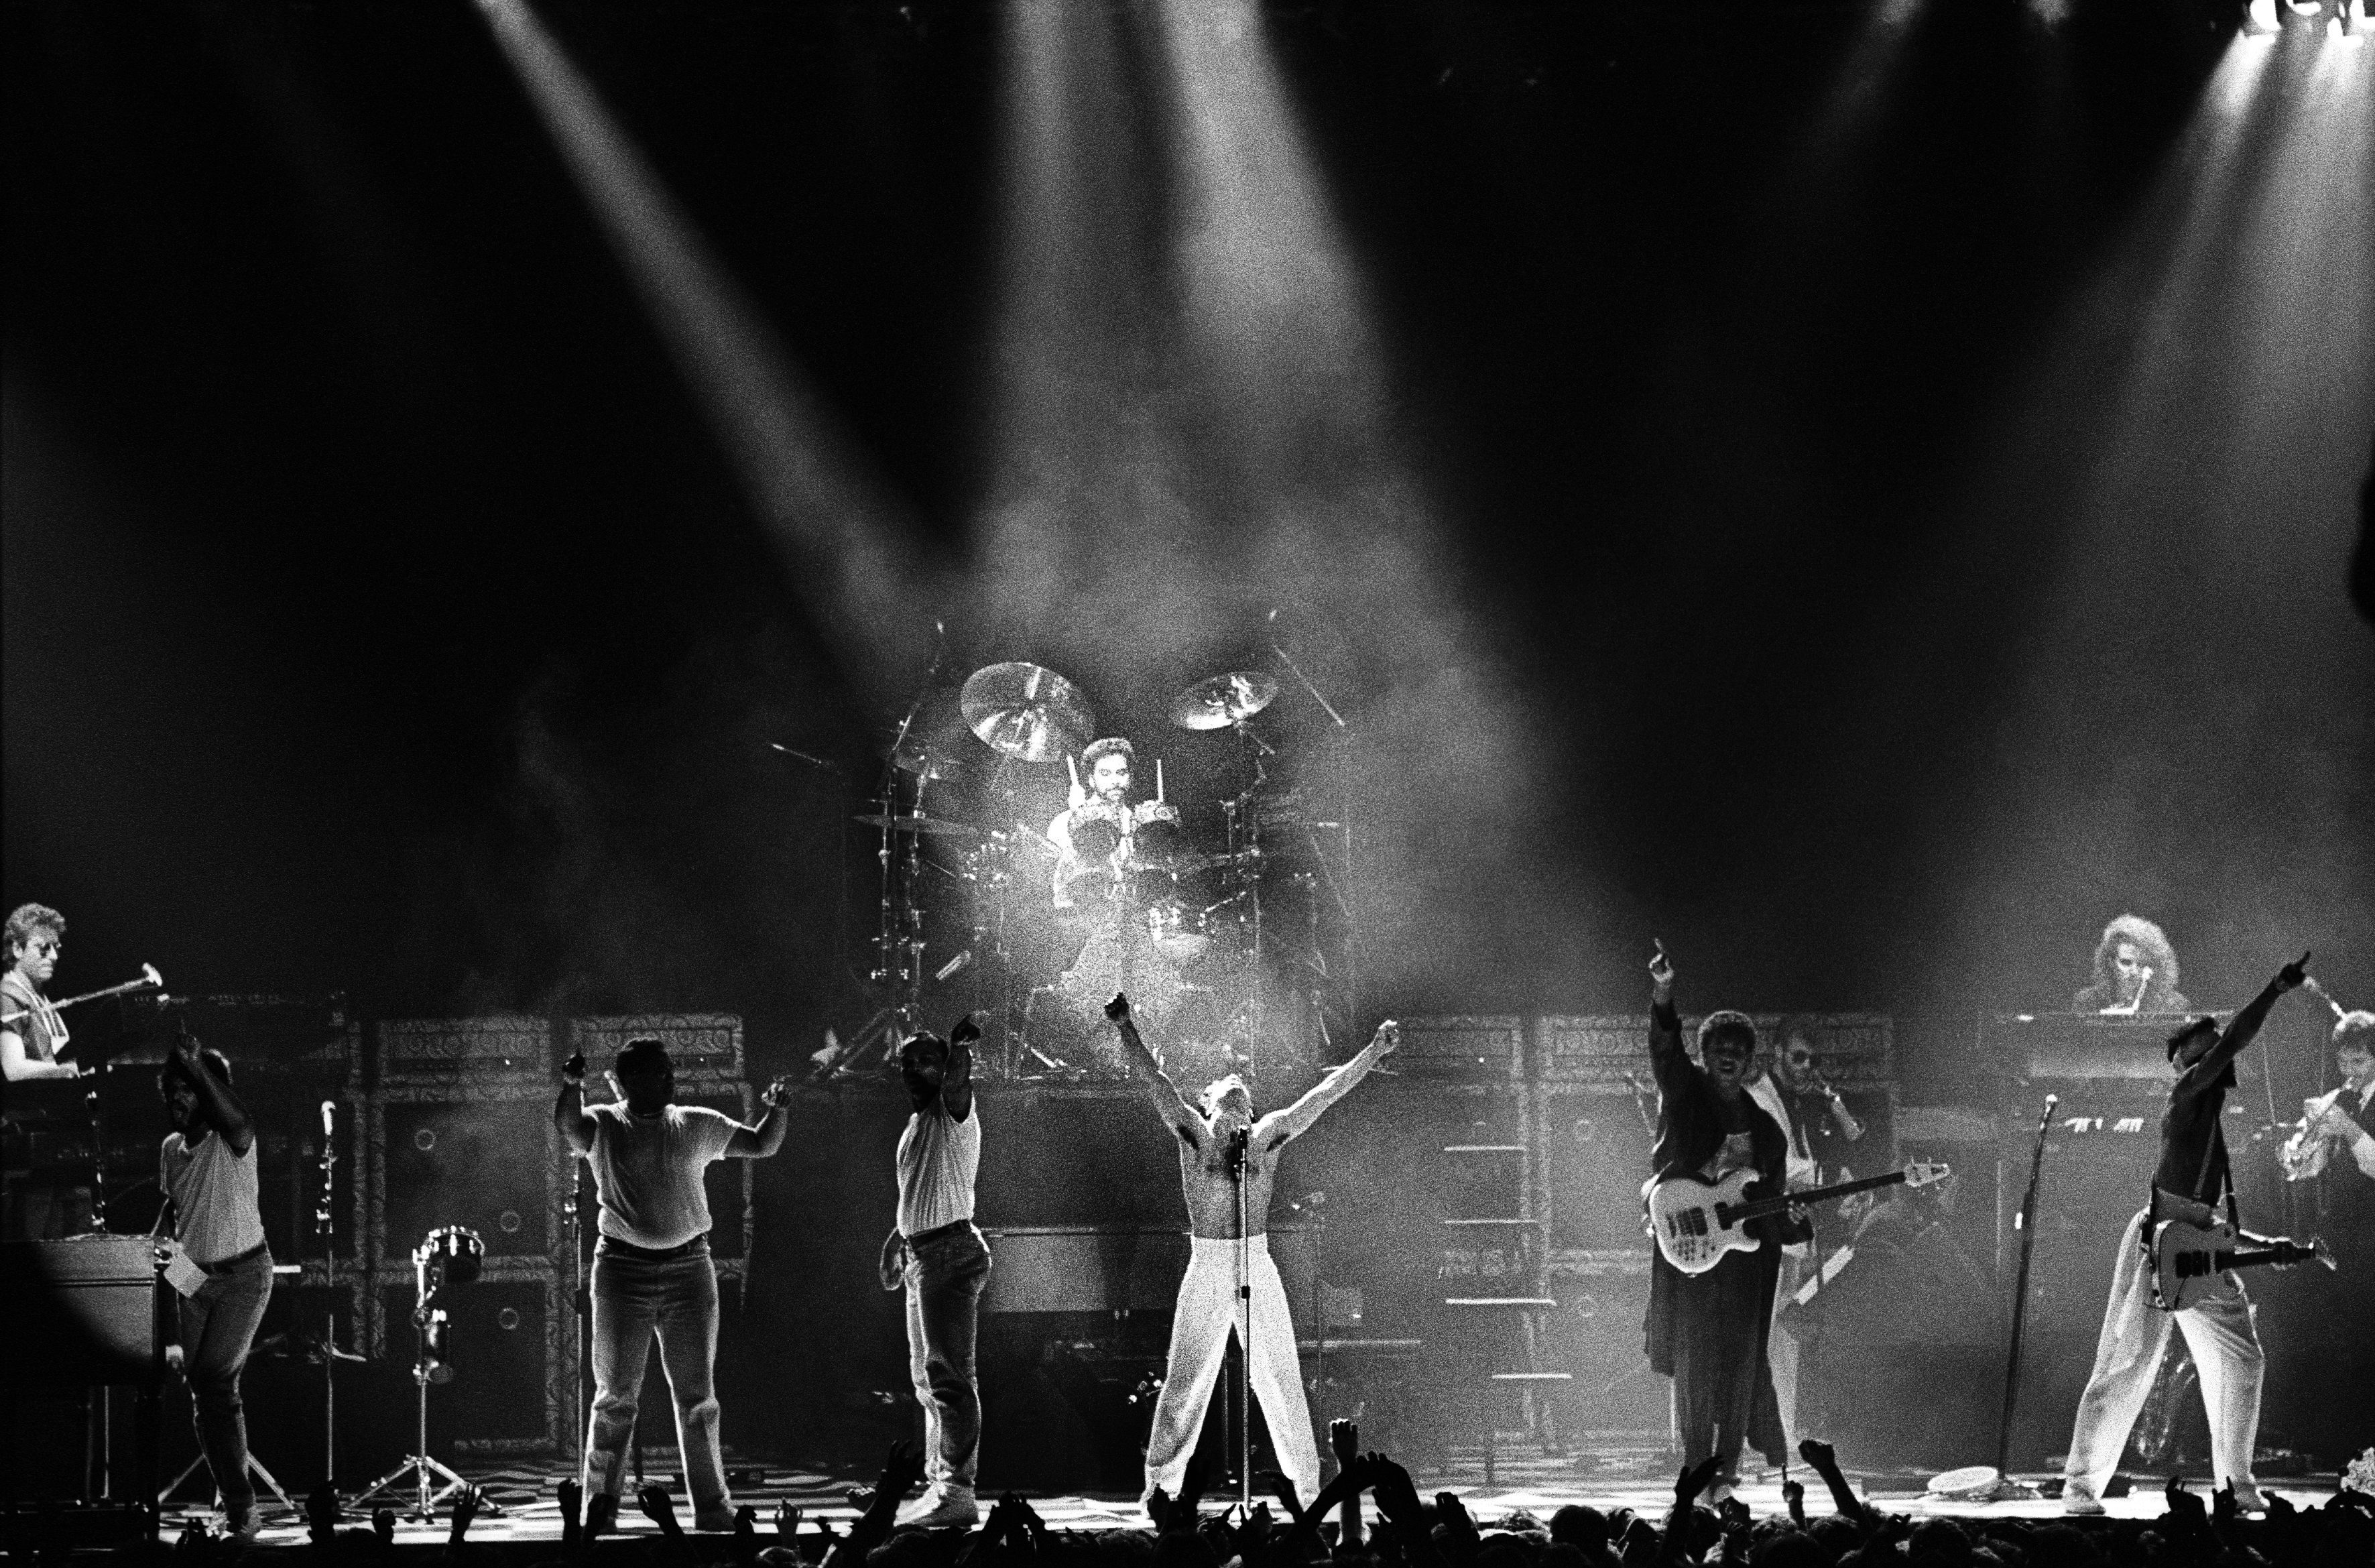 Prince and The Revolution perform on stage at Ahoy, Rotterdam, Netherlands, on Aug. 17, 1986.